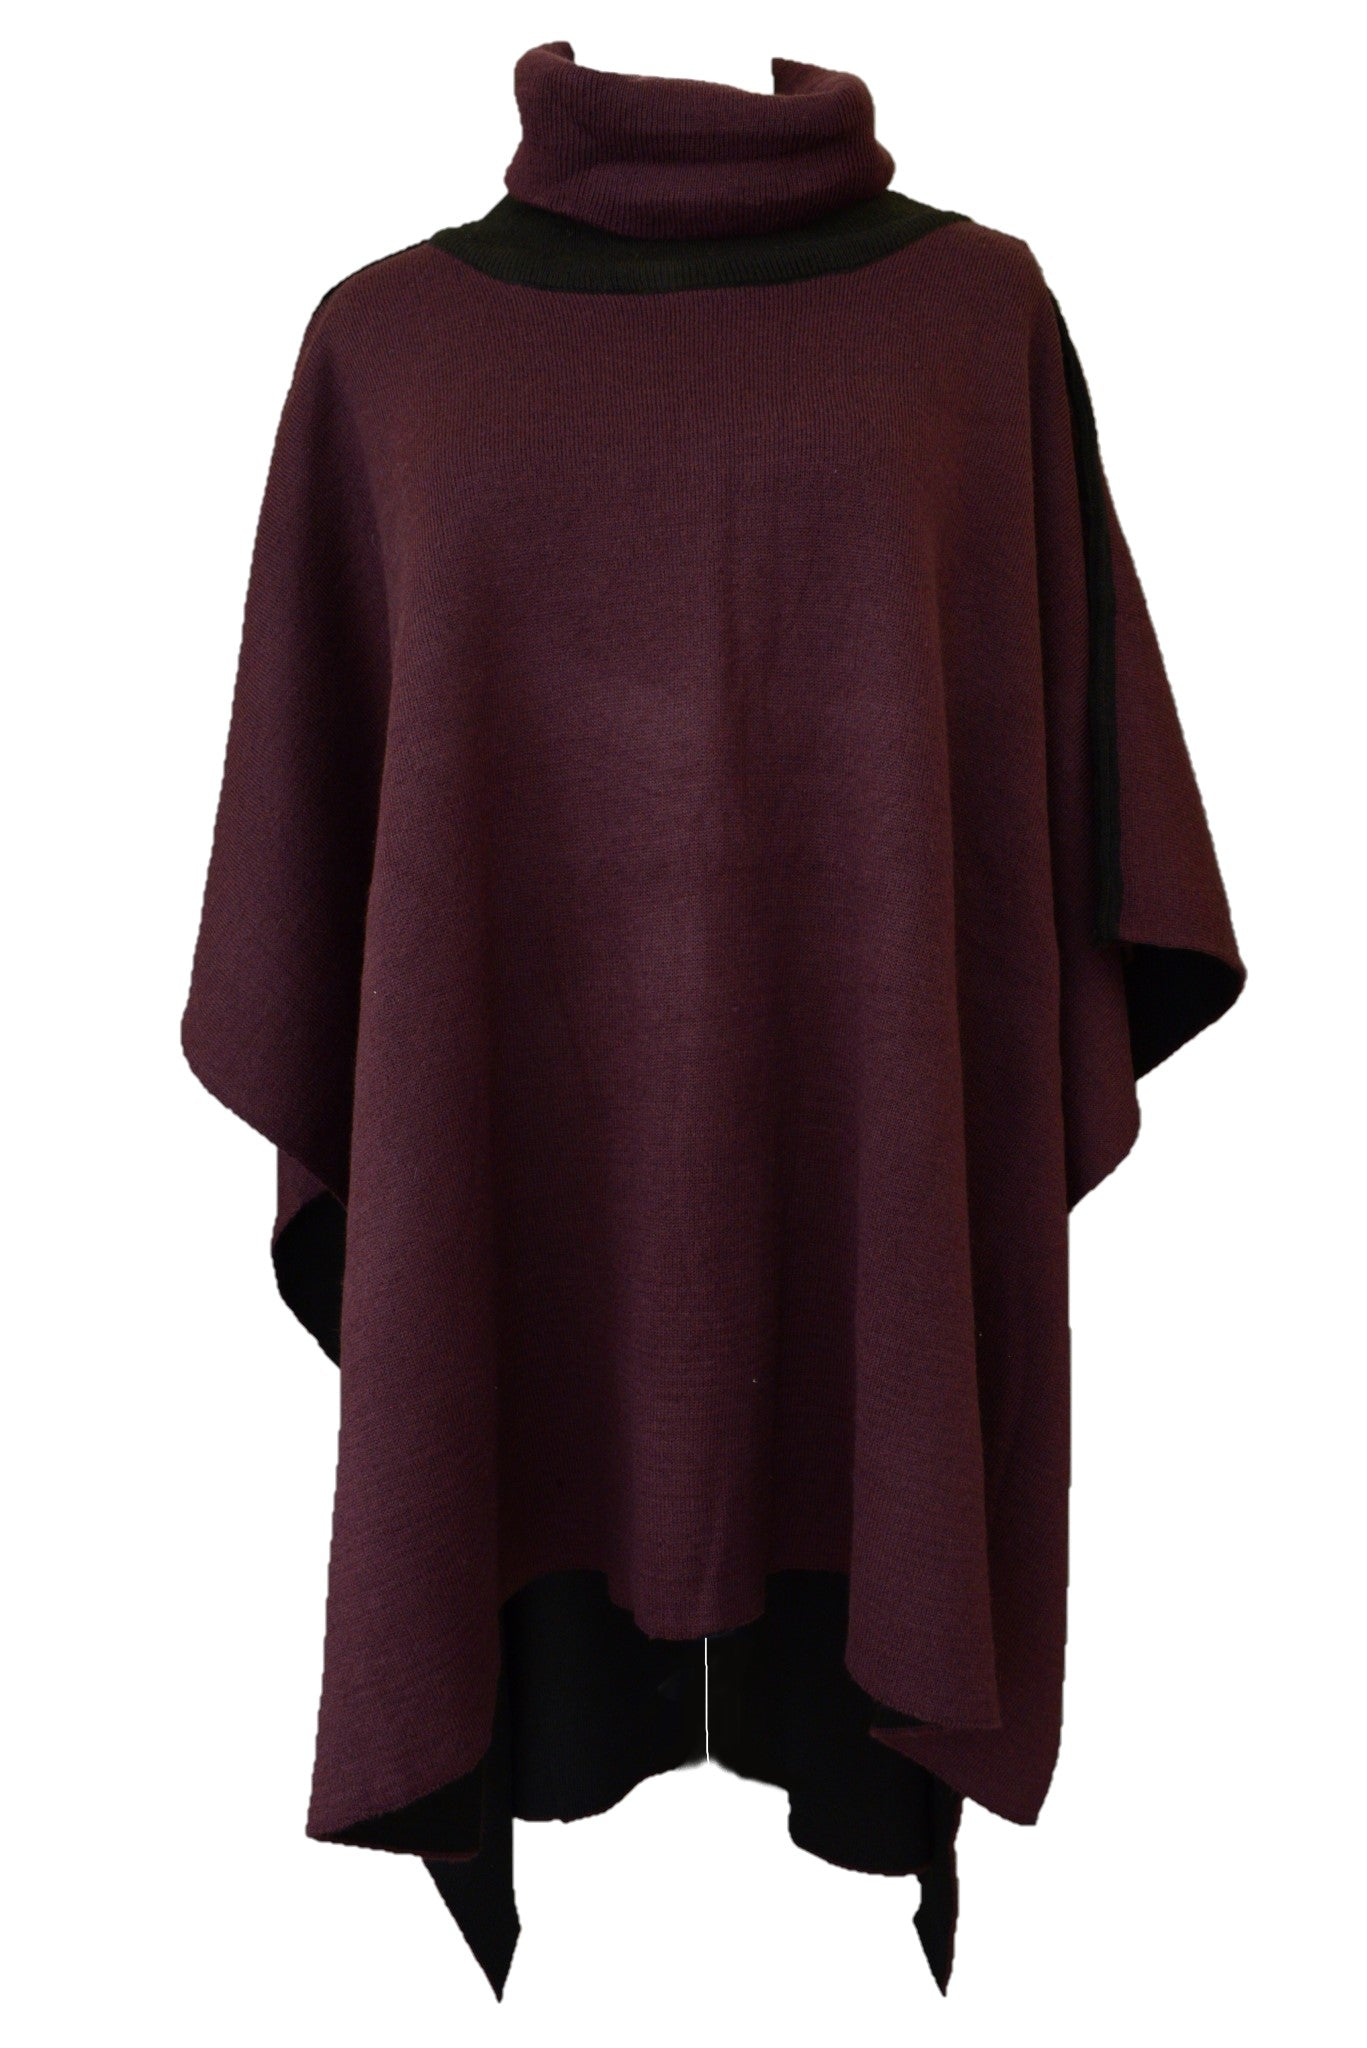 Katies boysenberry and black knit poncho